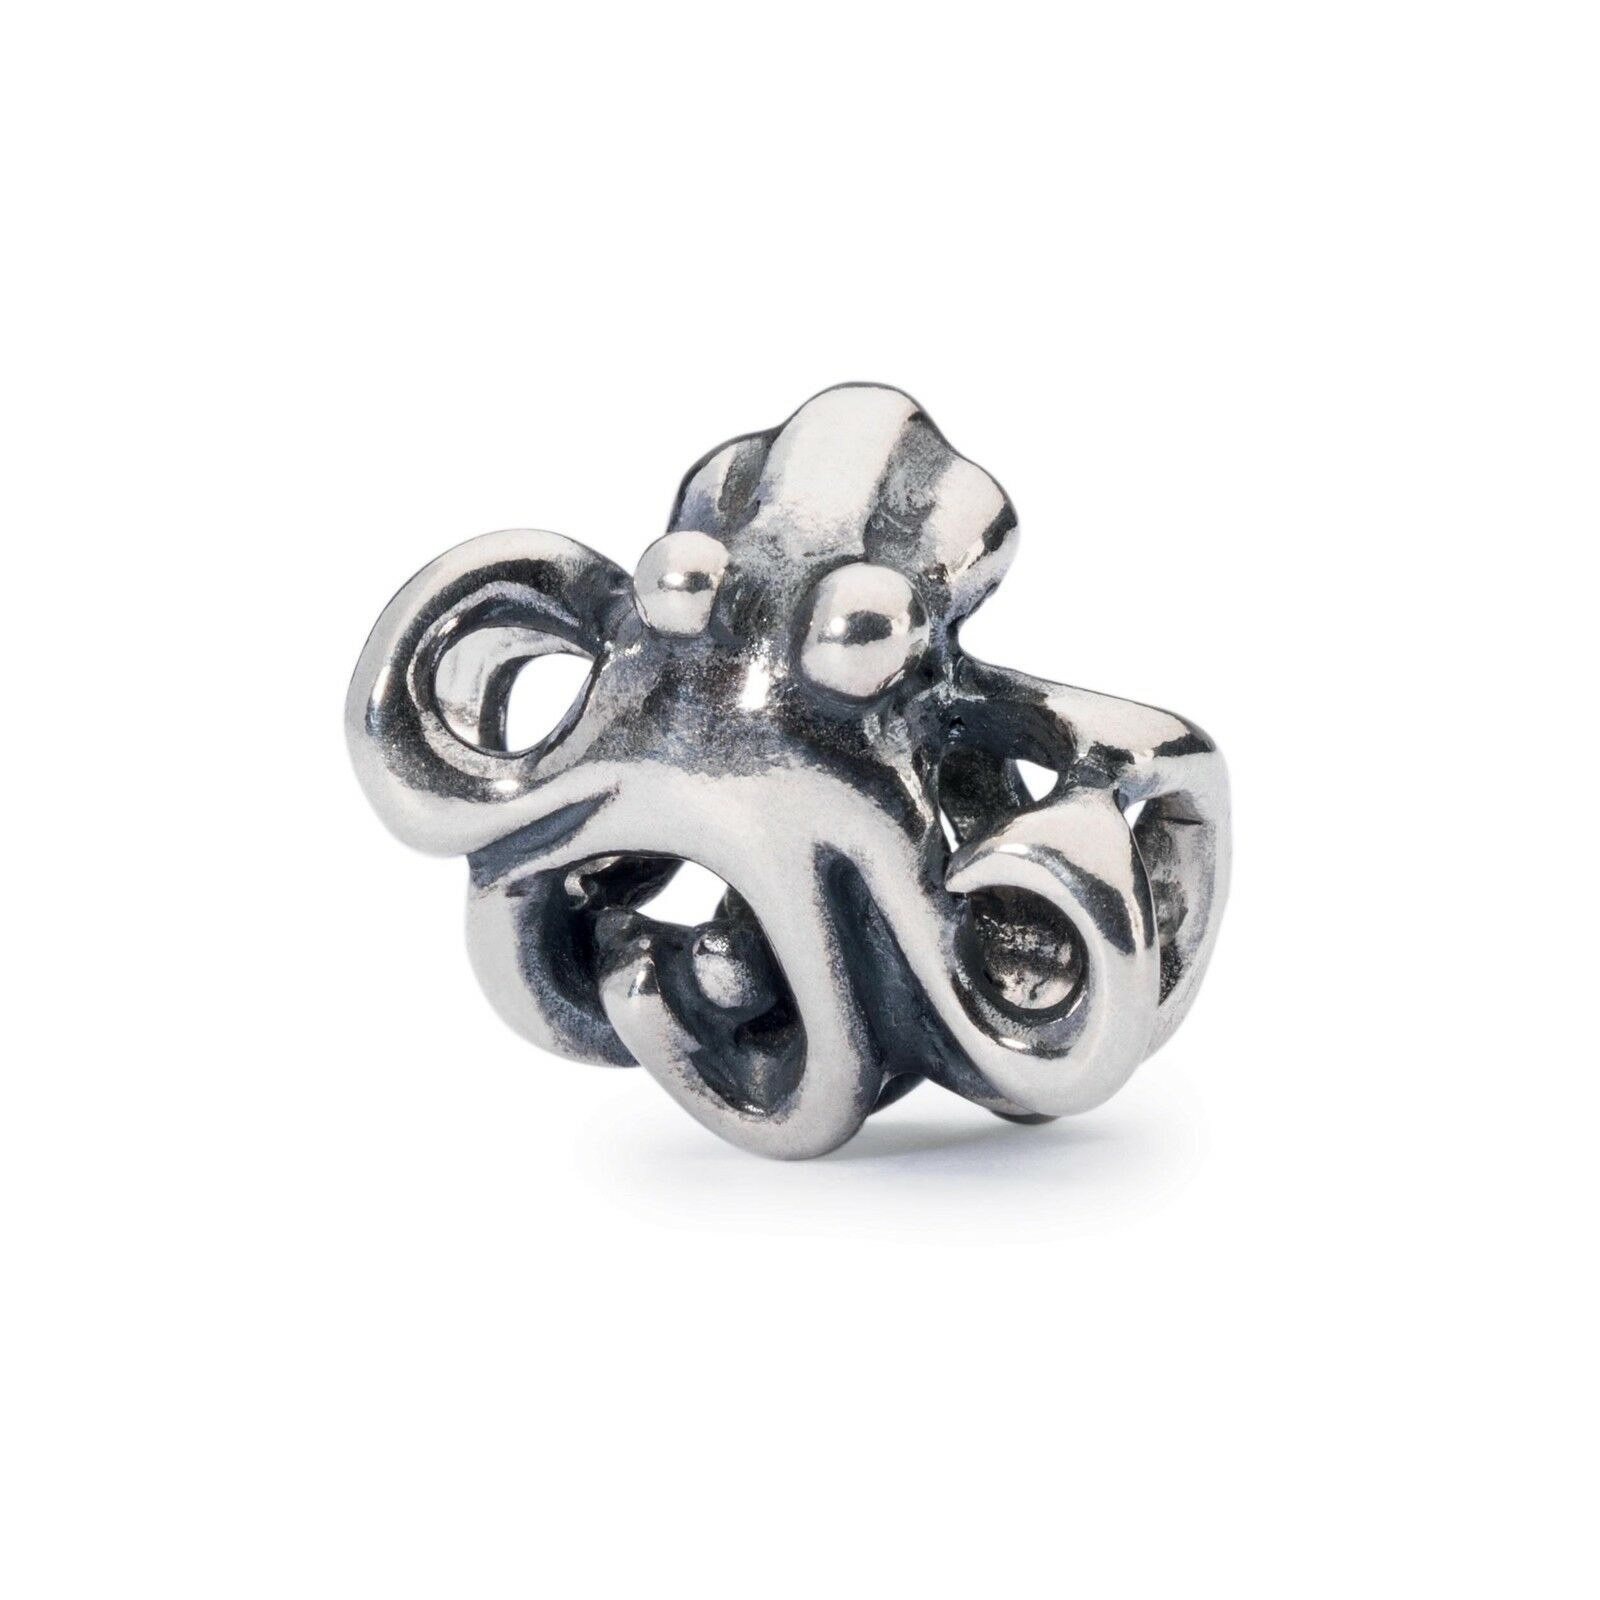 AUTHENTIC TROLLBEADS GUARDIAN OF OF OF TREASURES TAGBE-20074 GUARDIANO DEGLI ABISSI 15d761